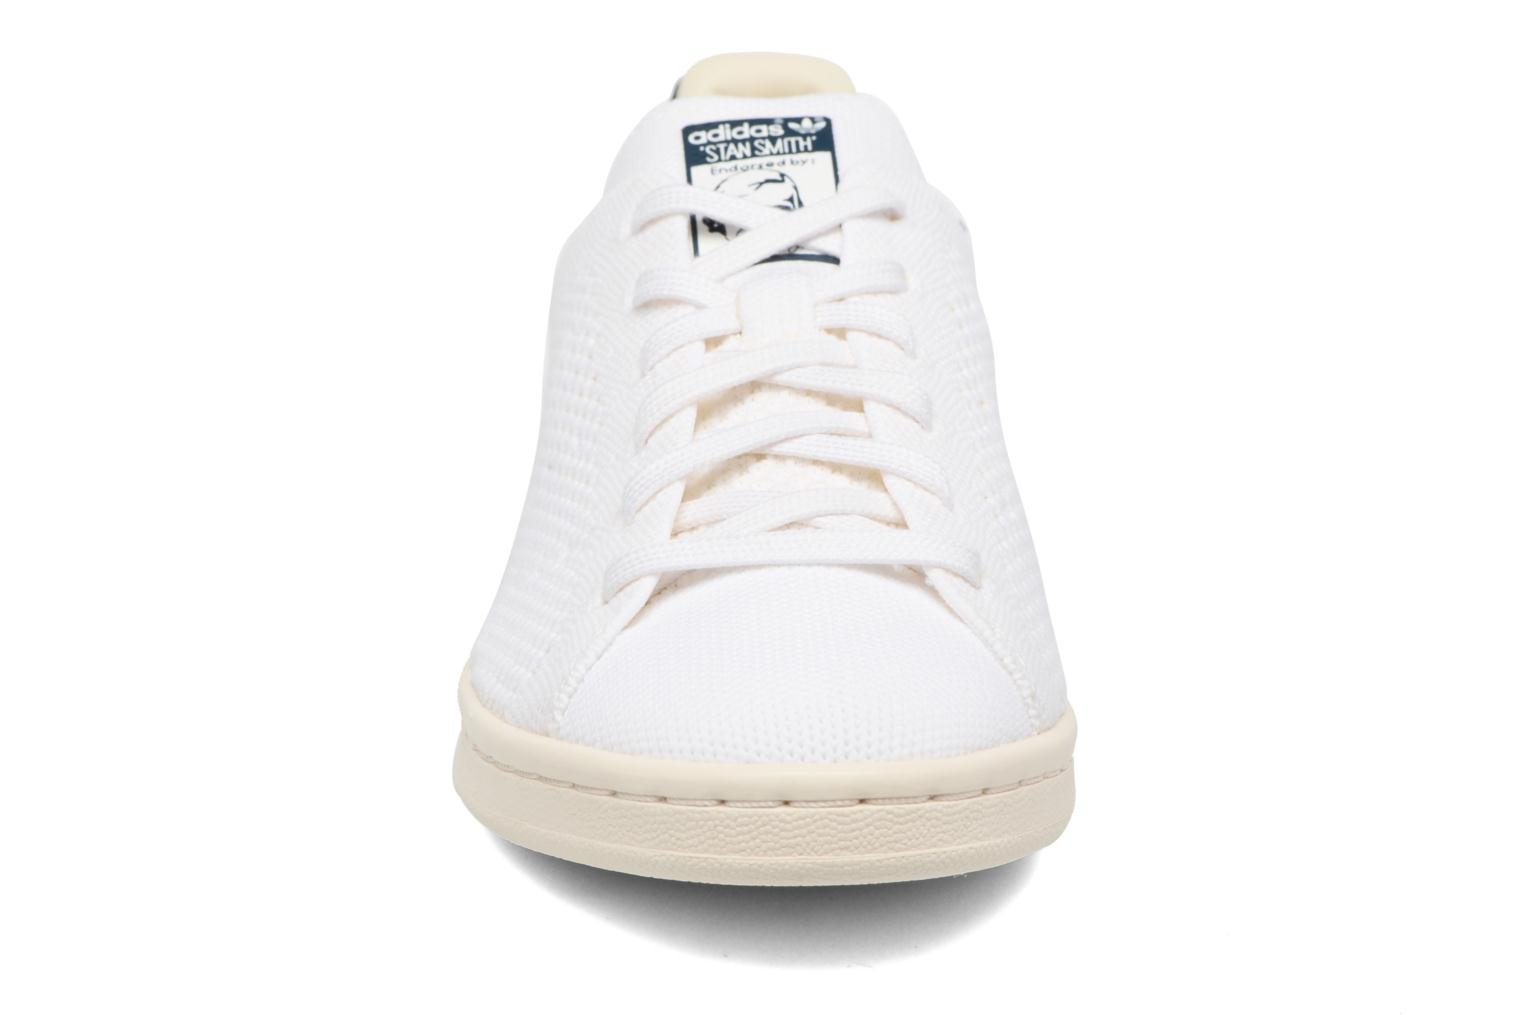 Stan Smith Og Pk Ftwbla/Ftwbla/Bla